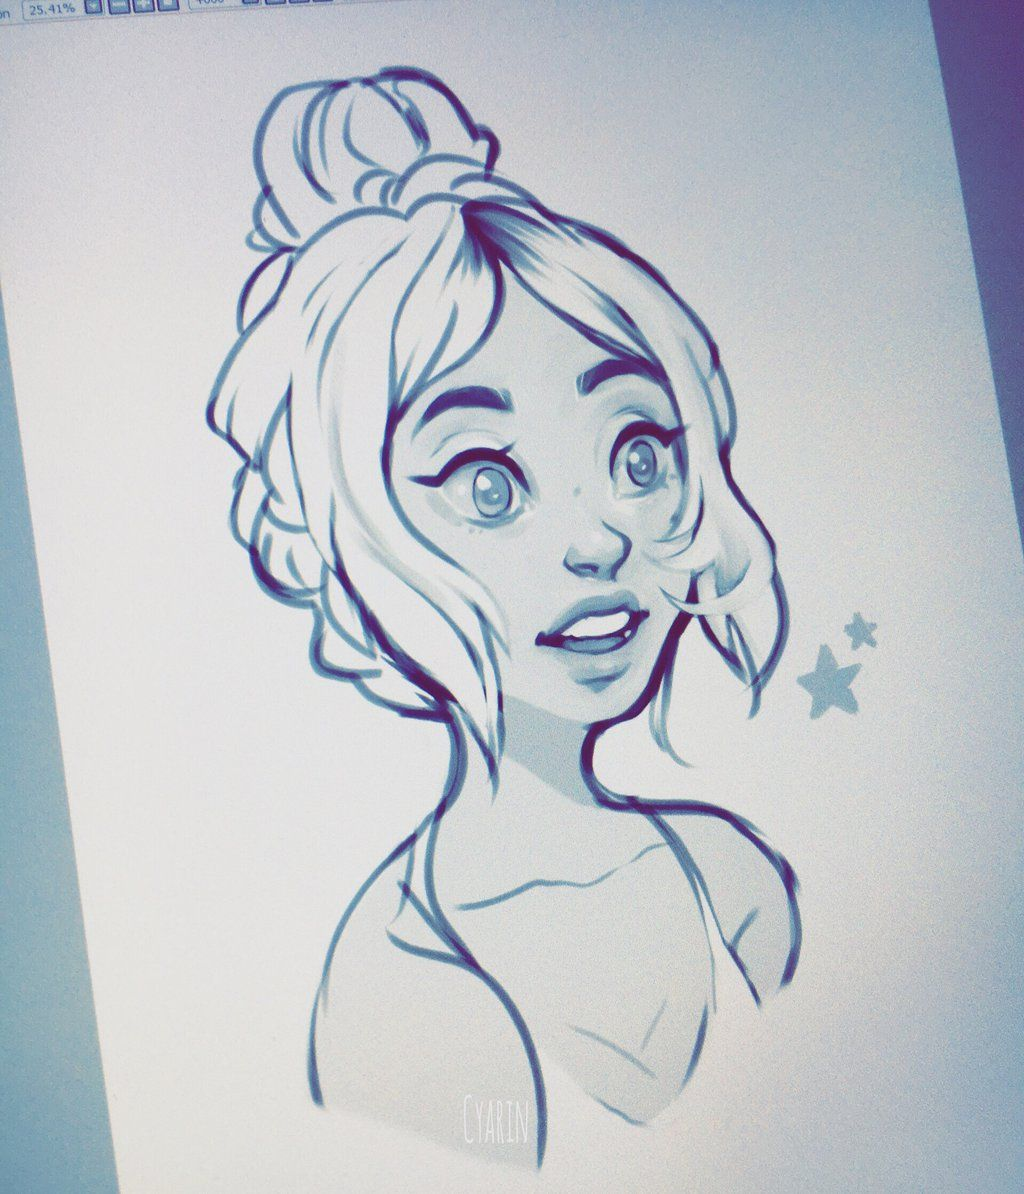 quick sketch by cyarin character designladies